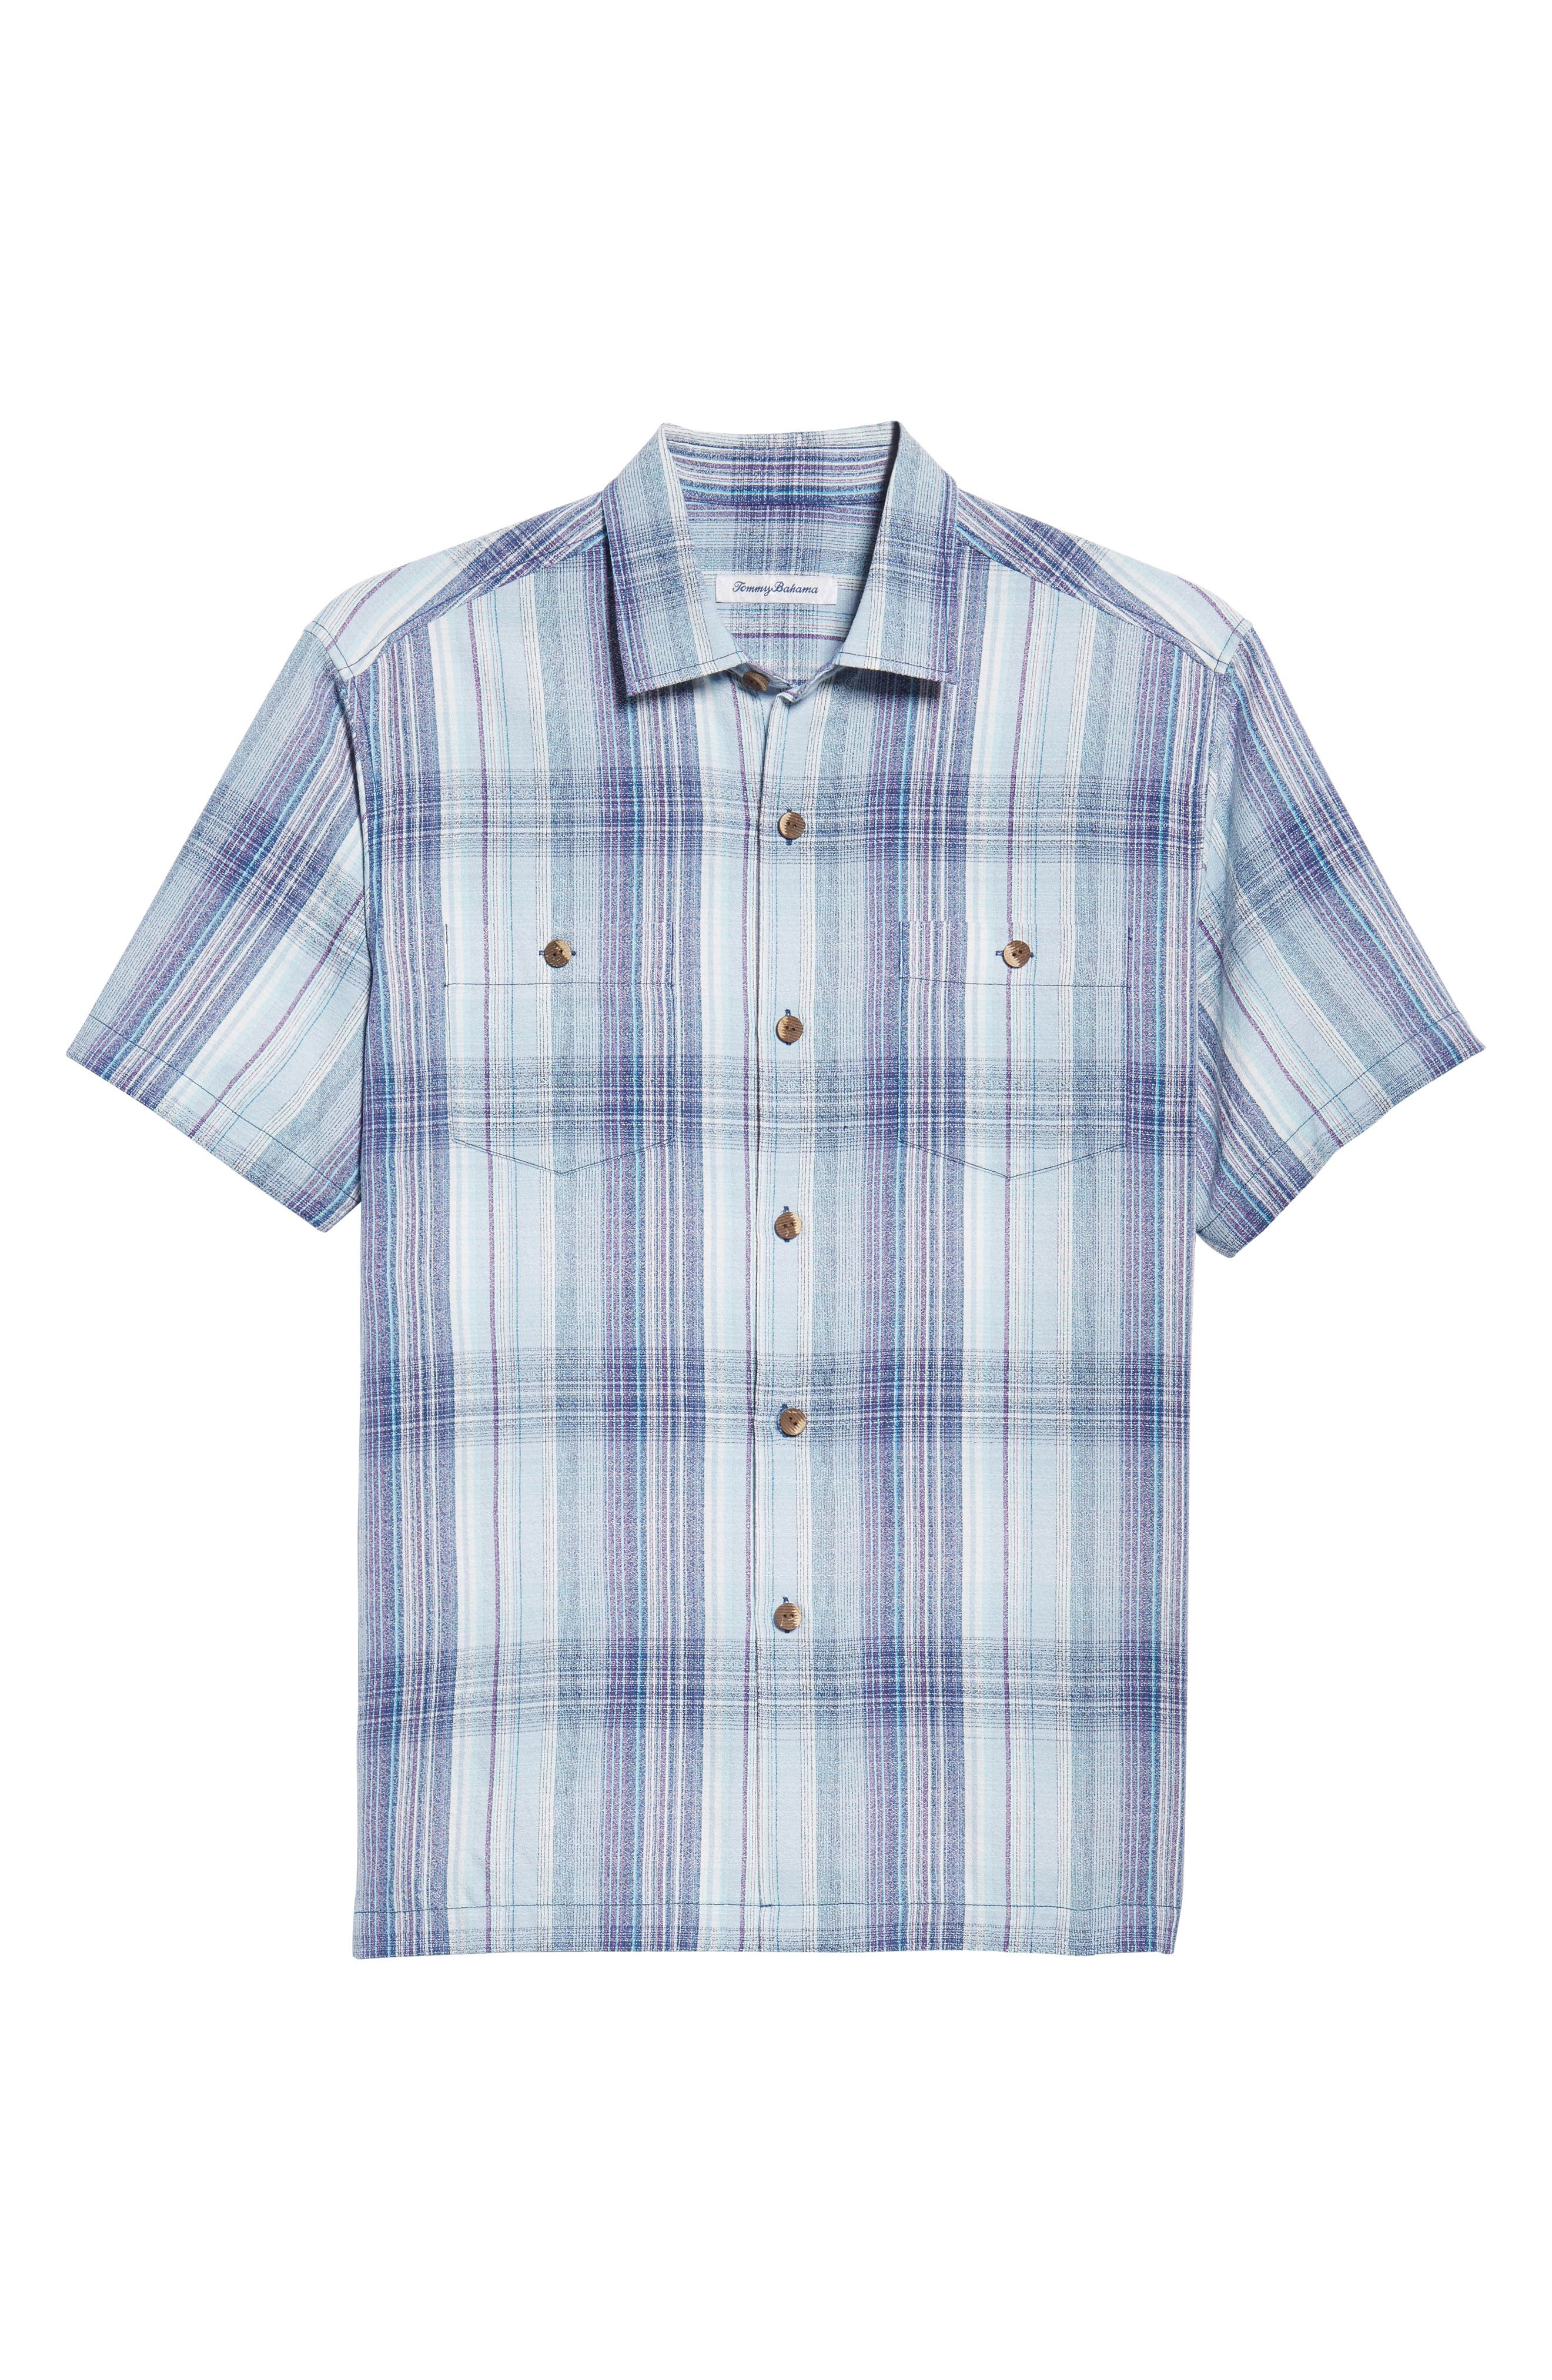 TOMMY BAHAMA,                             Banyan Cay Plaid Silk Blend Camp Shirt,                             Alternate thumbnail 6, color,                             401